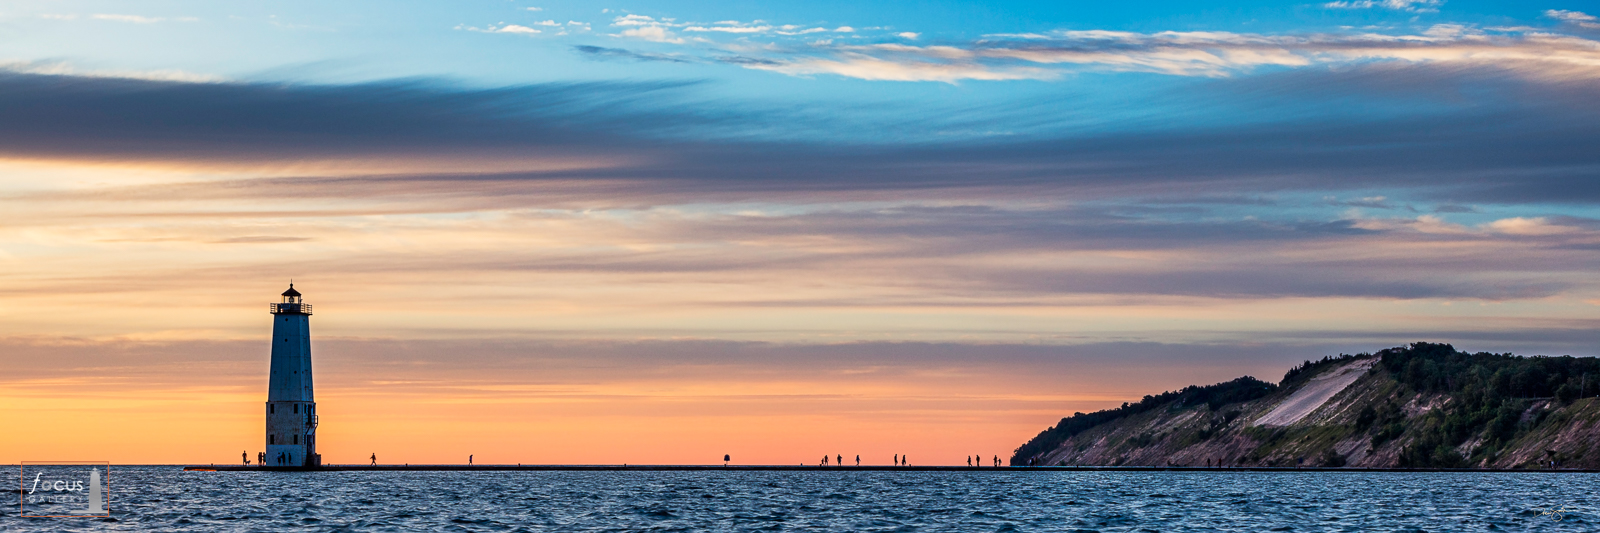 Colorful sunset over the Frankfort North Breakwater Lighthouse, Benzie County, Michigan